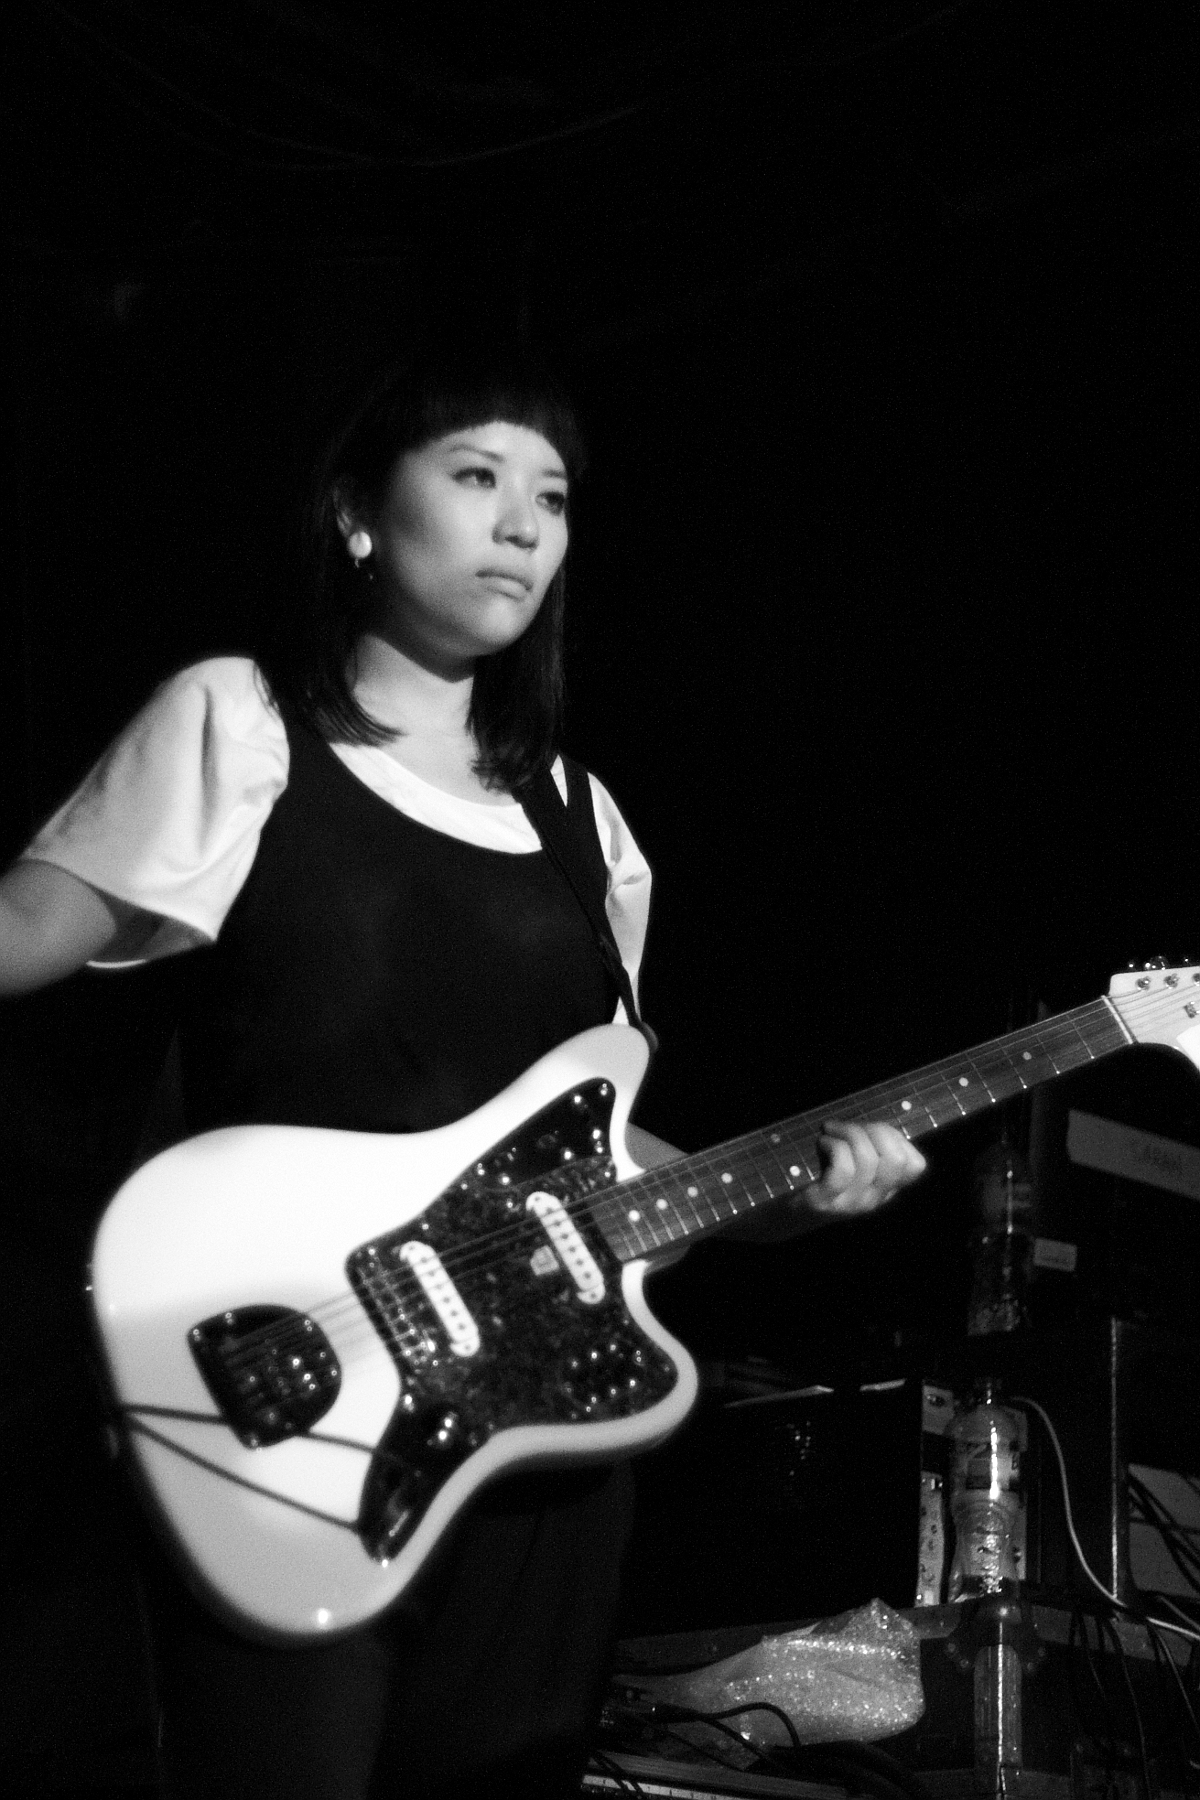 Ayu Okakita, Guitar, B&W, Nedry, Hoxton Square Bar & Kitchen, London